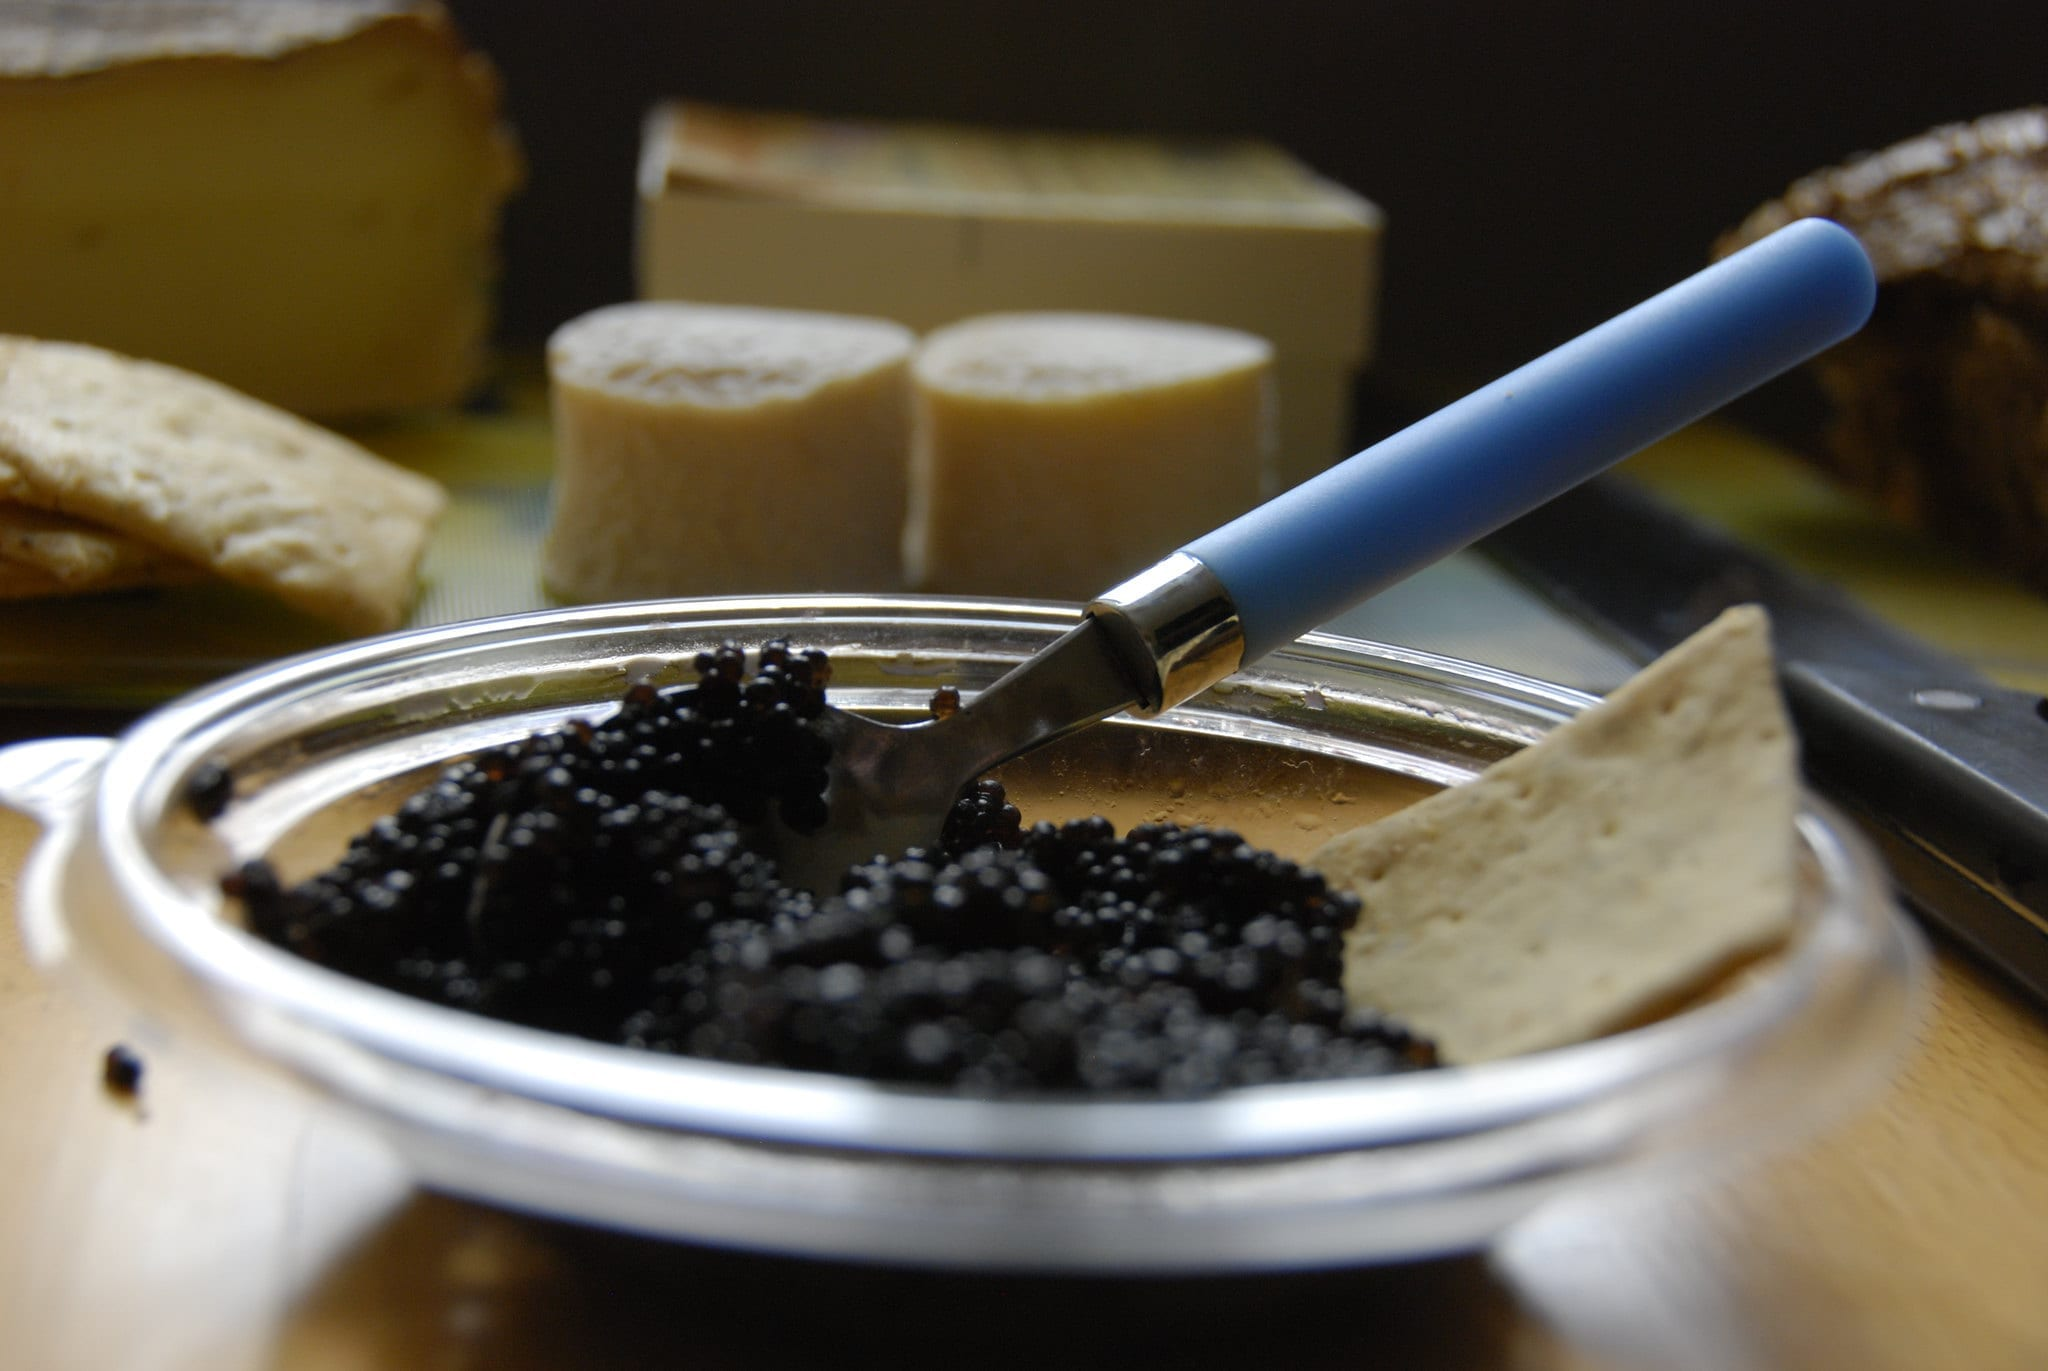 Caviar. Photo by Wendy Johnson, CC Flickr